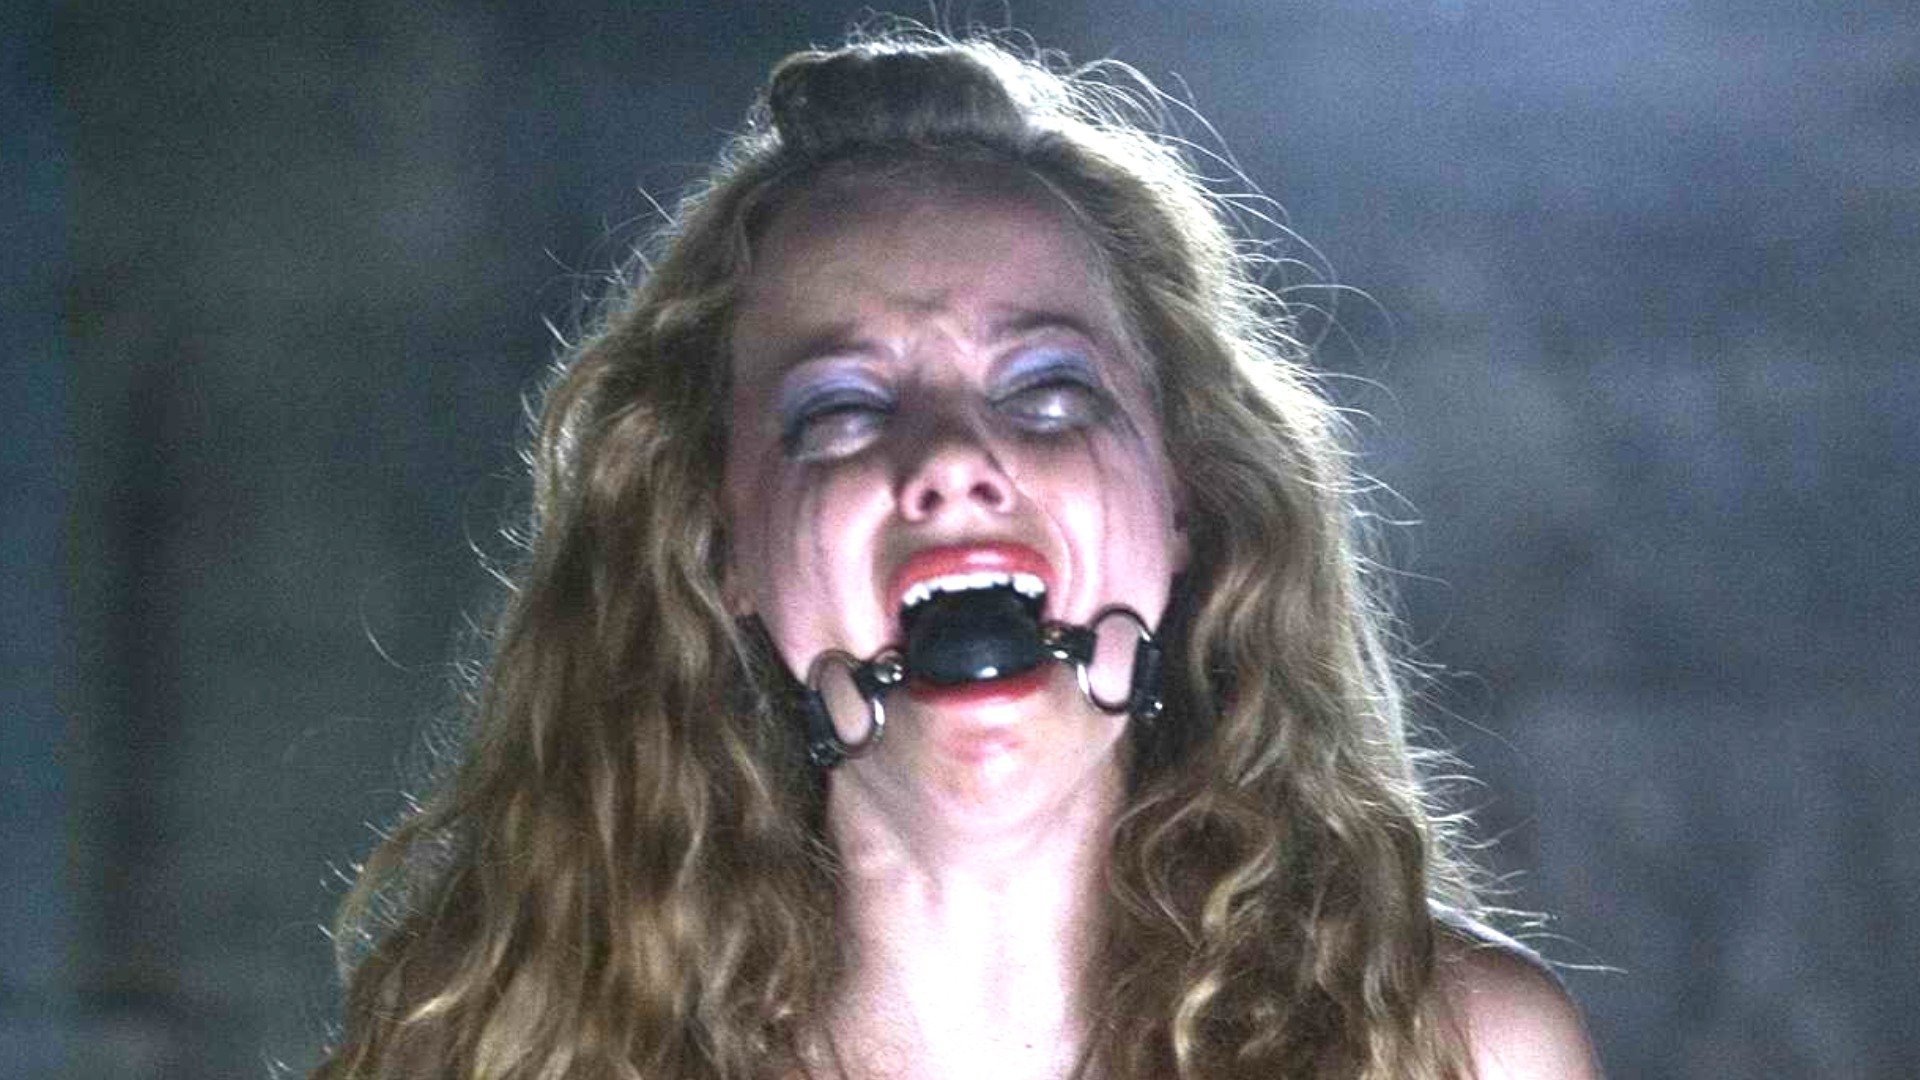 Banned Horror Movies That Are Too Disturbing To Sit Through